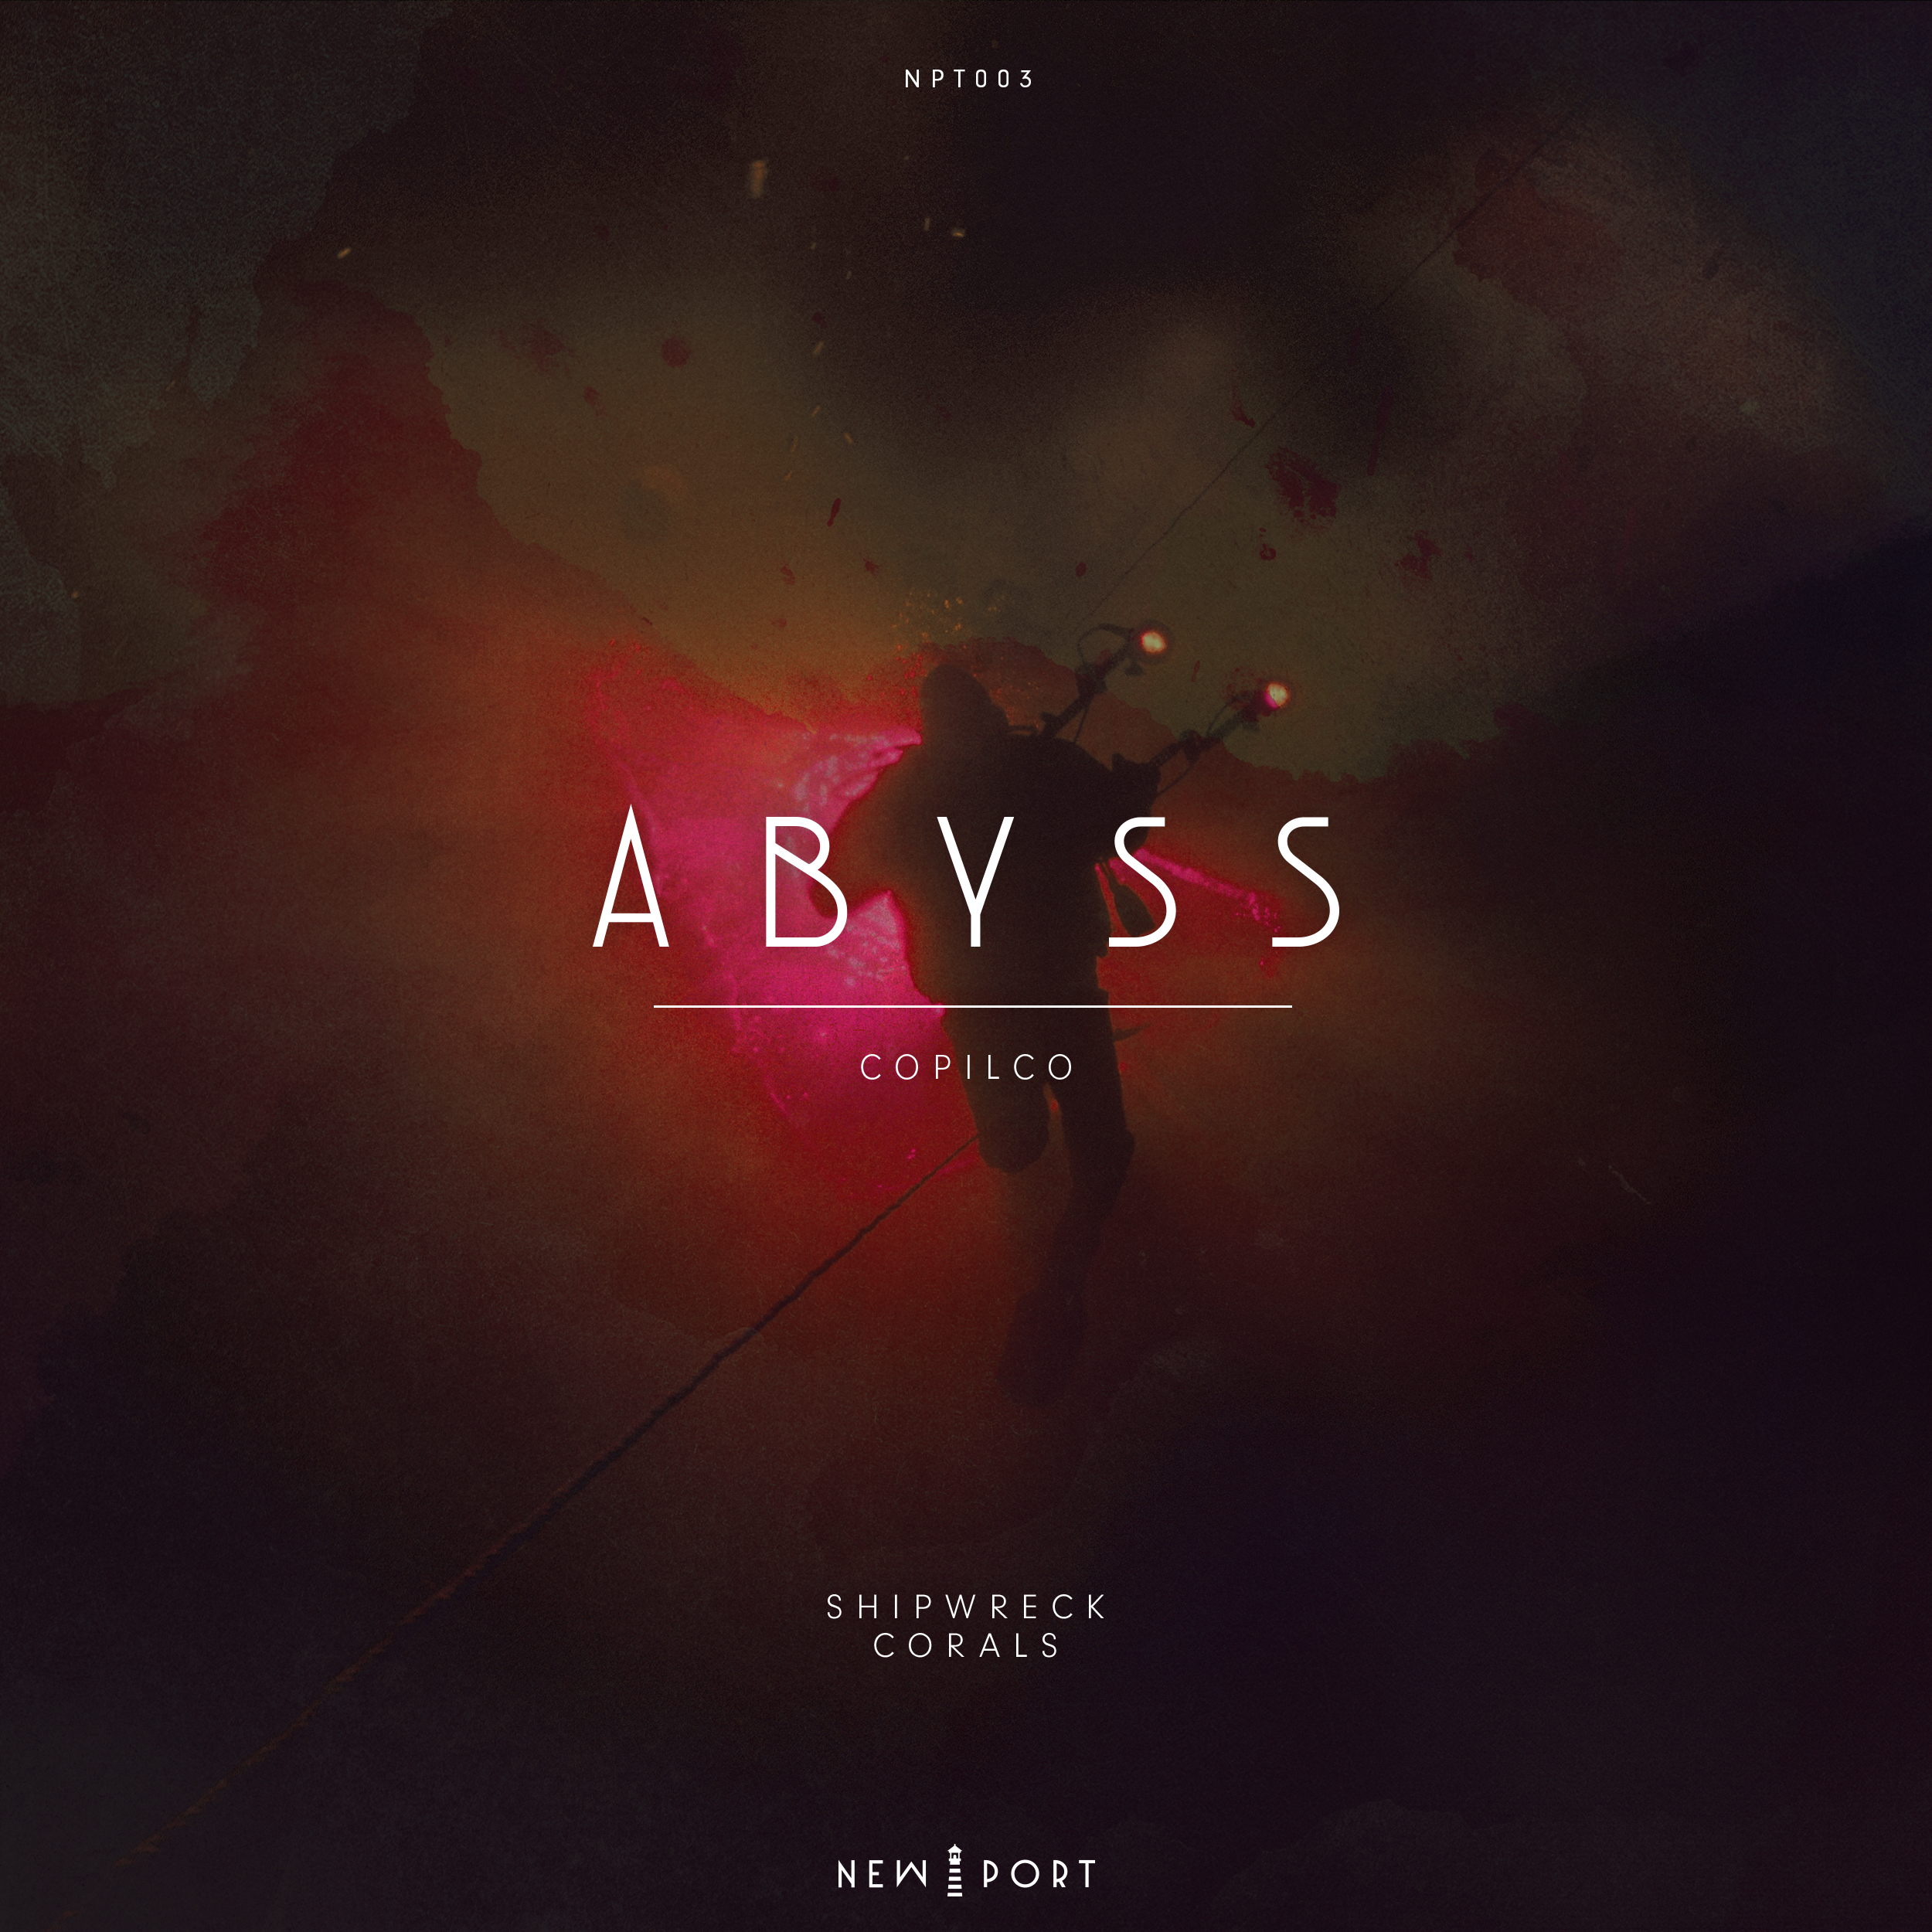 Abyss-2500x2500